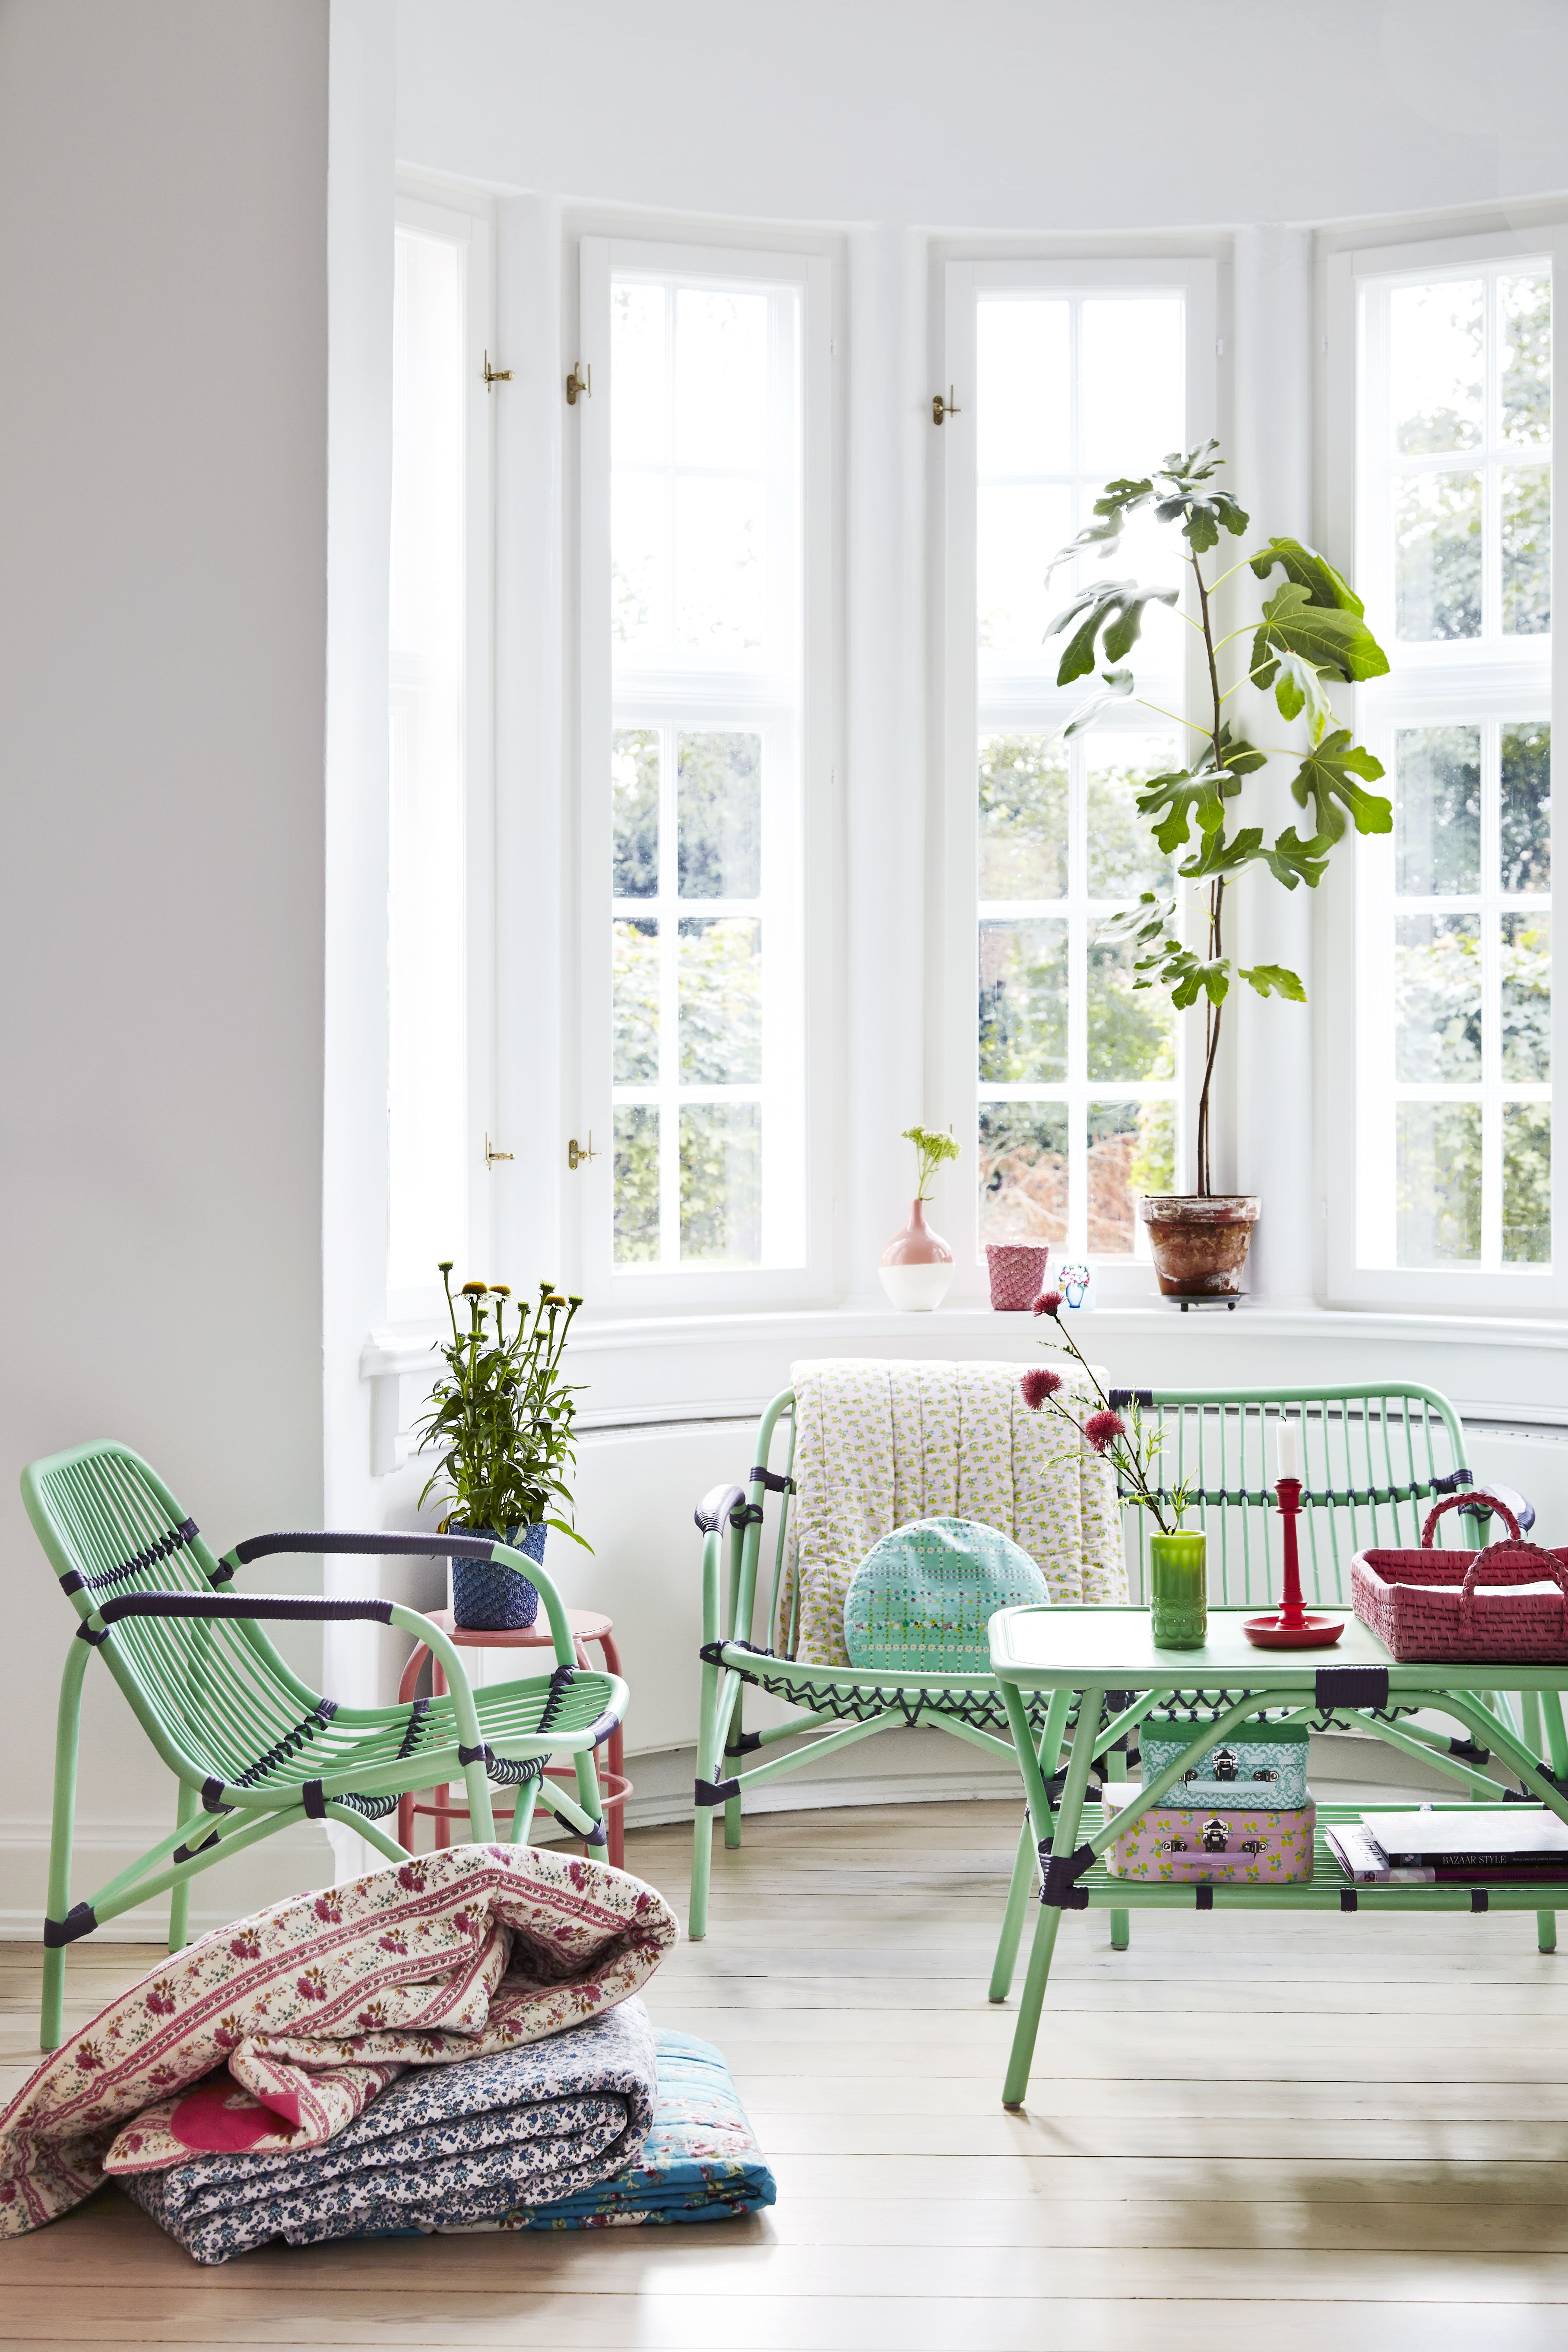 Green Cane furniture SS15 collection | בית | Pinterest | Cane ...